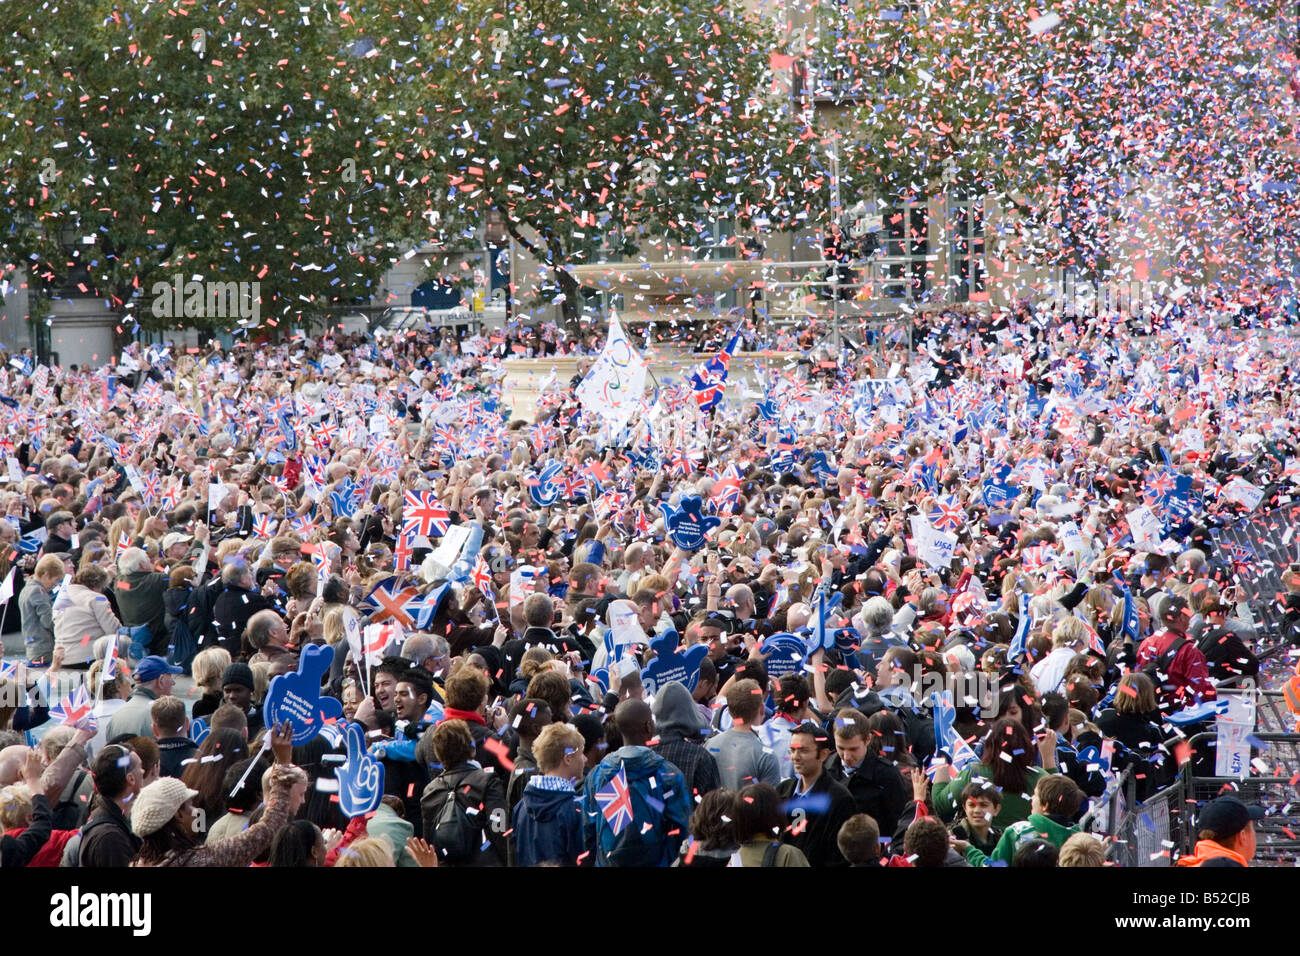 The crowd in Trafalgar Square celebrate Team GB Beijing Olympics Medallists - victory parade, London, October 16th - Stock Image